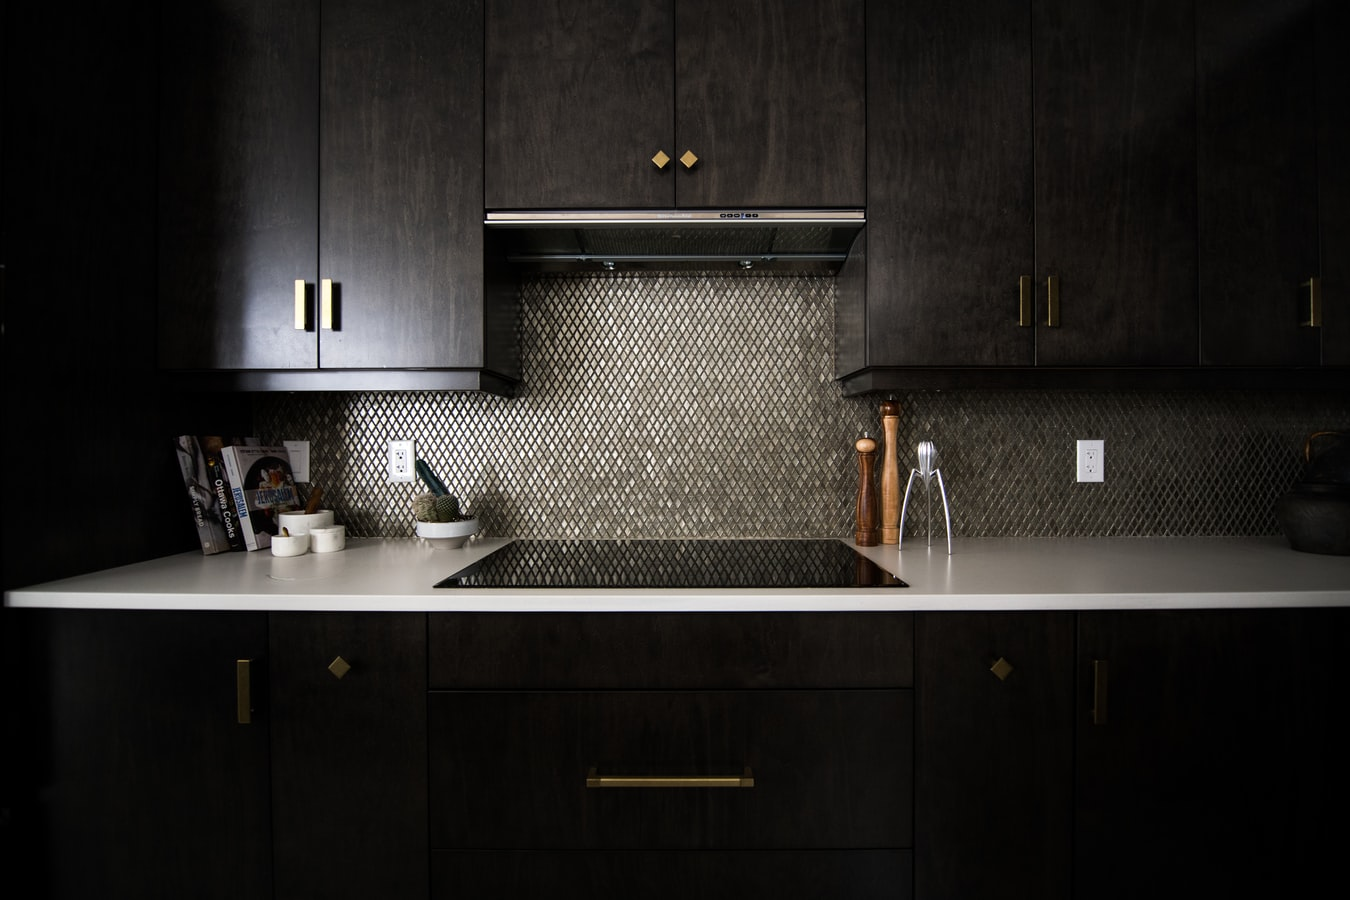 black kitchen cabinets interior design tips